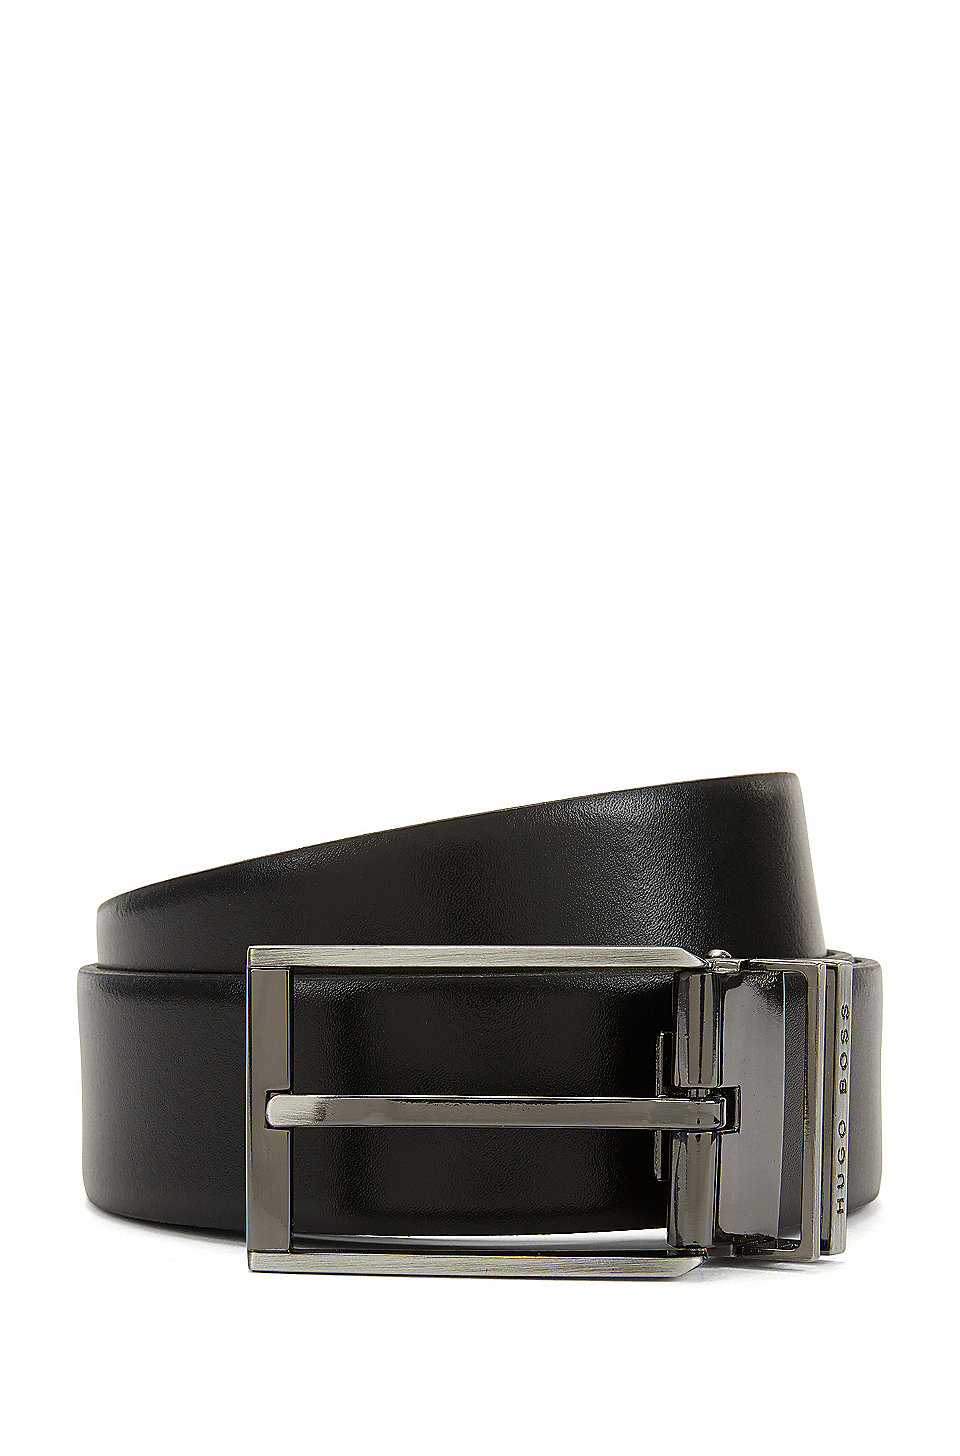 Small Leather Goods - Belts N Hf2sYlA7